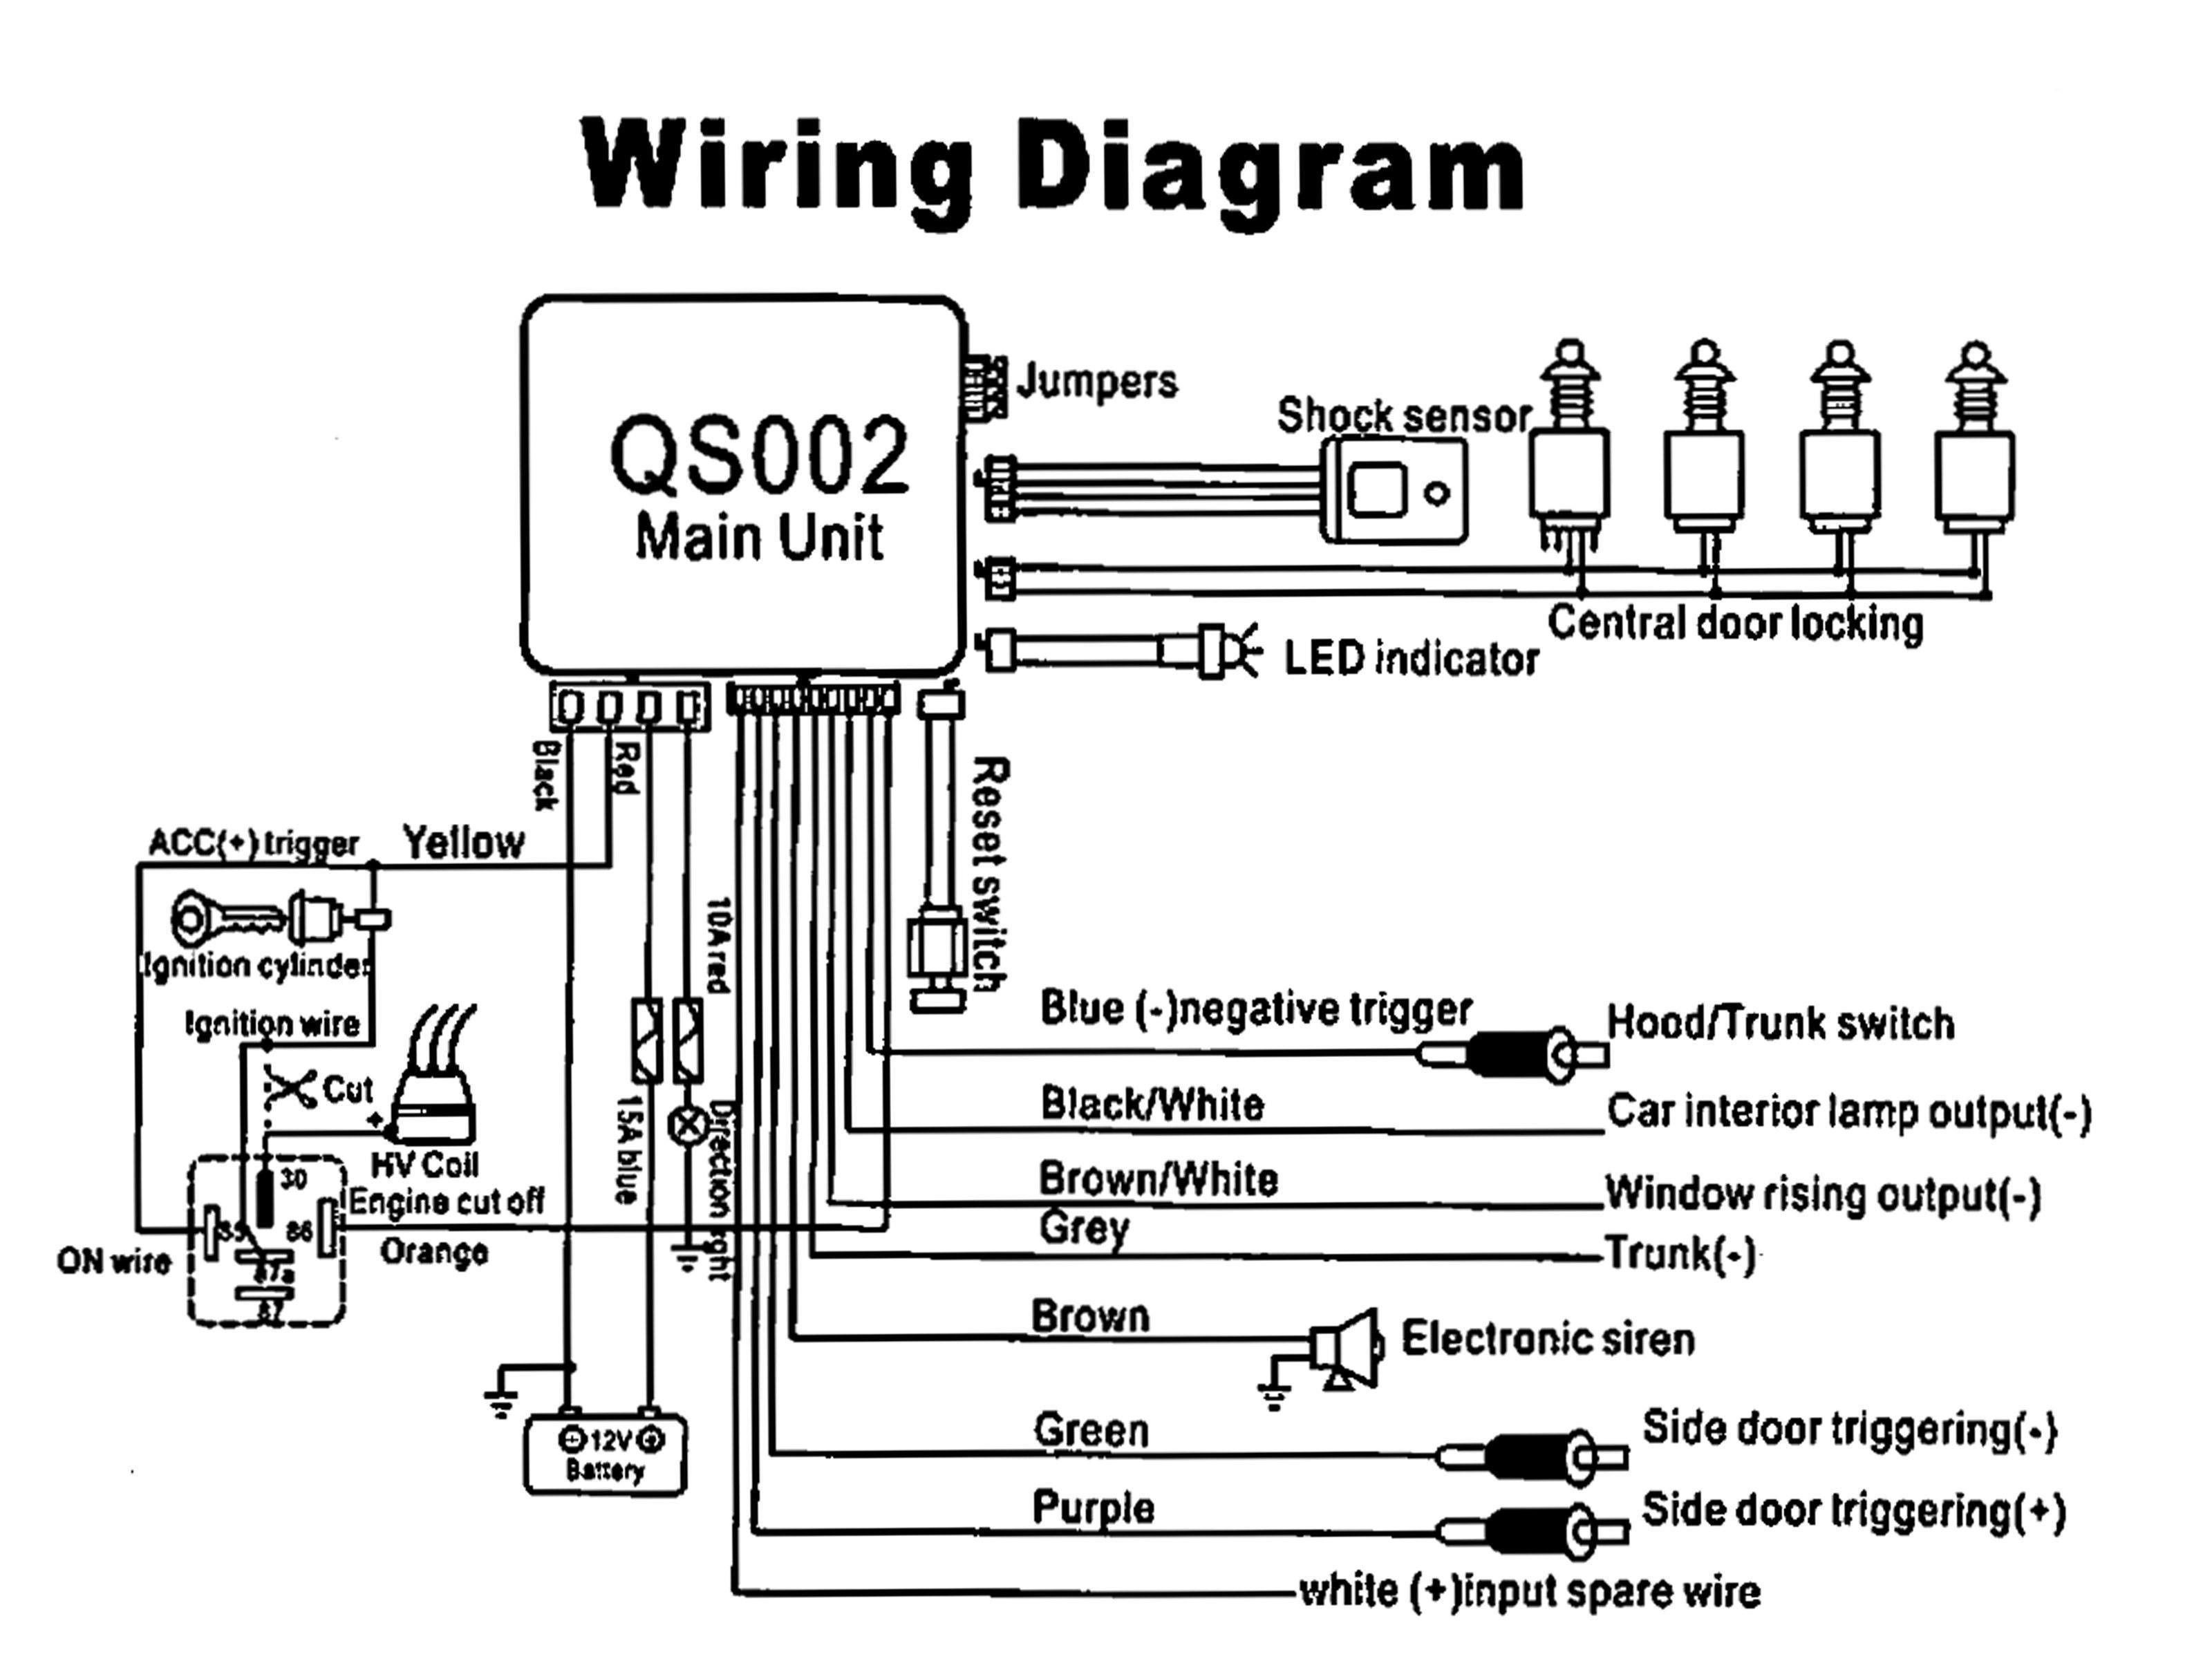 20 Auto Wiring Diagrams For You Car Alarm Electrical Circuit Diagram Alarm Systems For Home